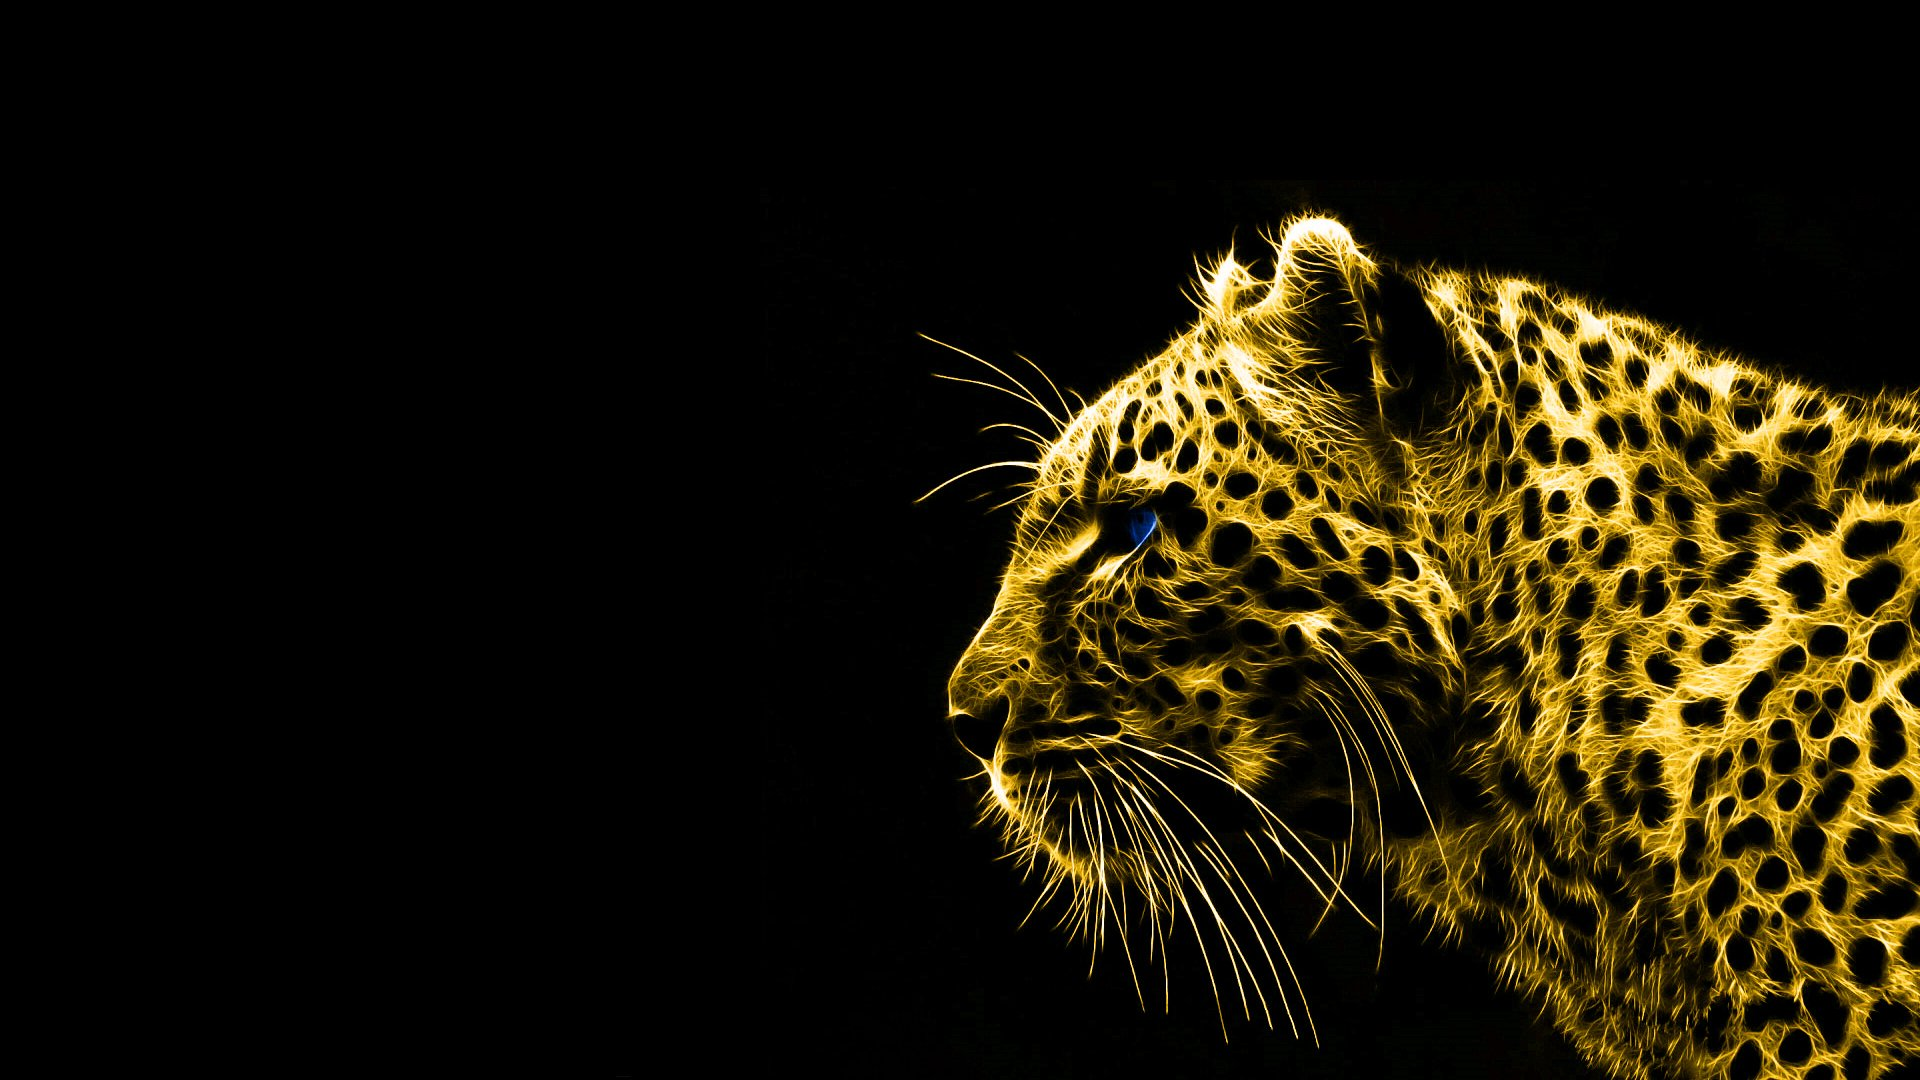 Black And Gold Wallpaper Wallpapersafari